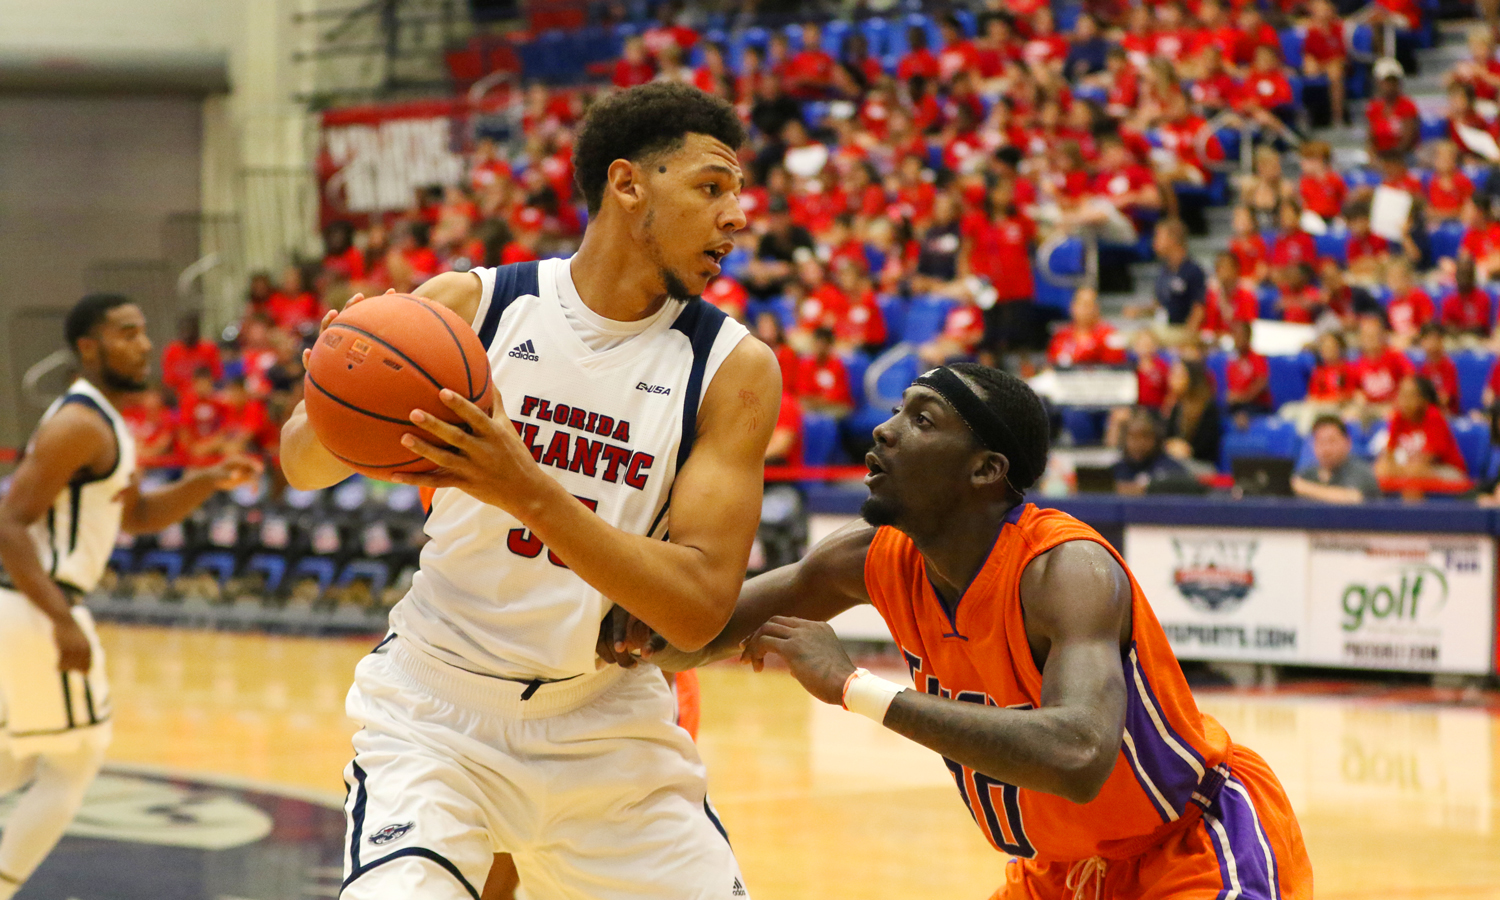 FAU redshirt senior center Ronald Delph (33) looks around for a pass while being guarded by a Edward Waters player during the Owls Nov. 16 game versus the Tigers. Joshua Giron | Staff Photographer